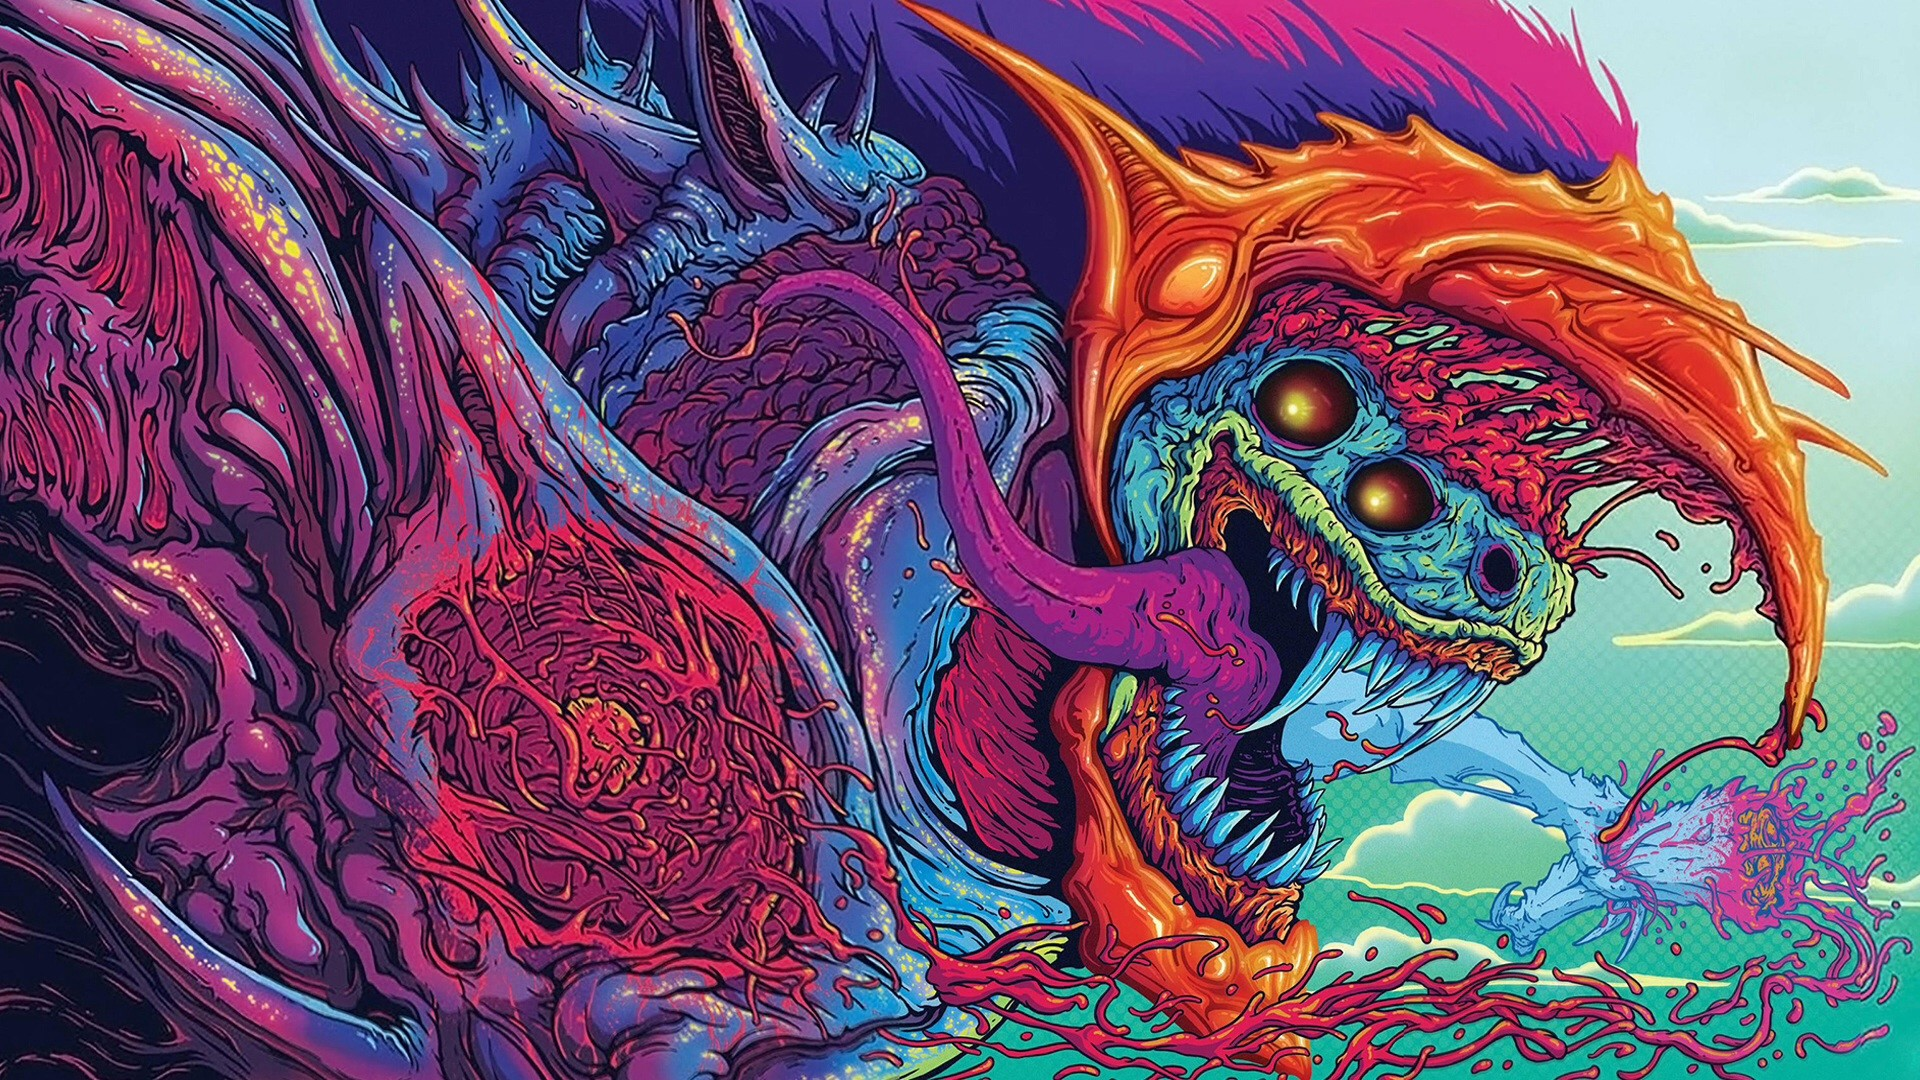 Tags: Psychedelic Cool